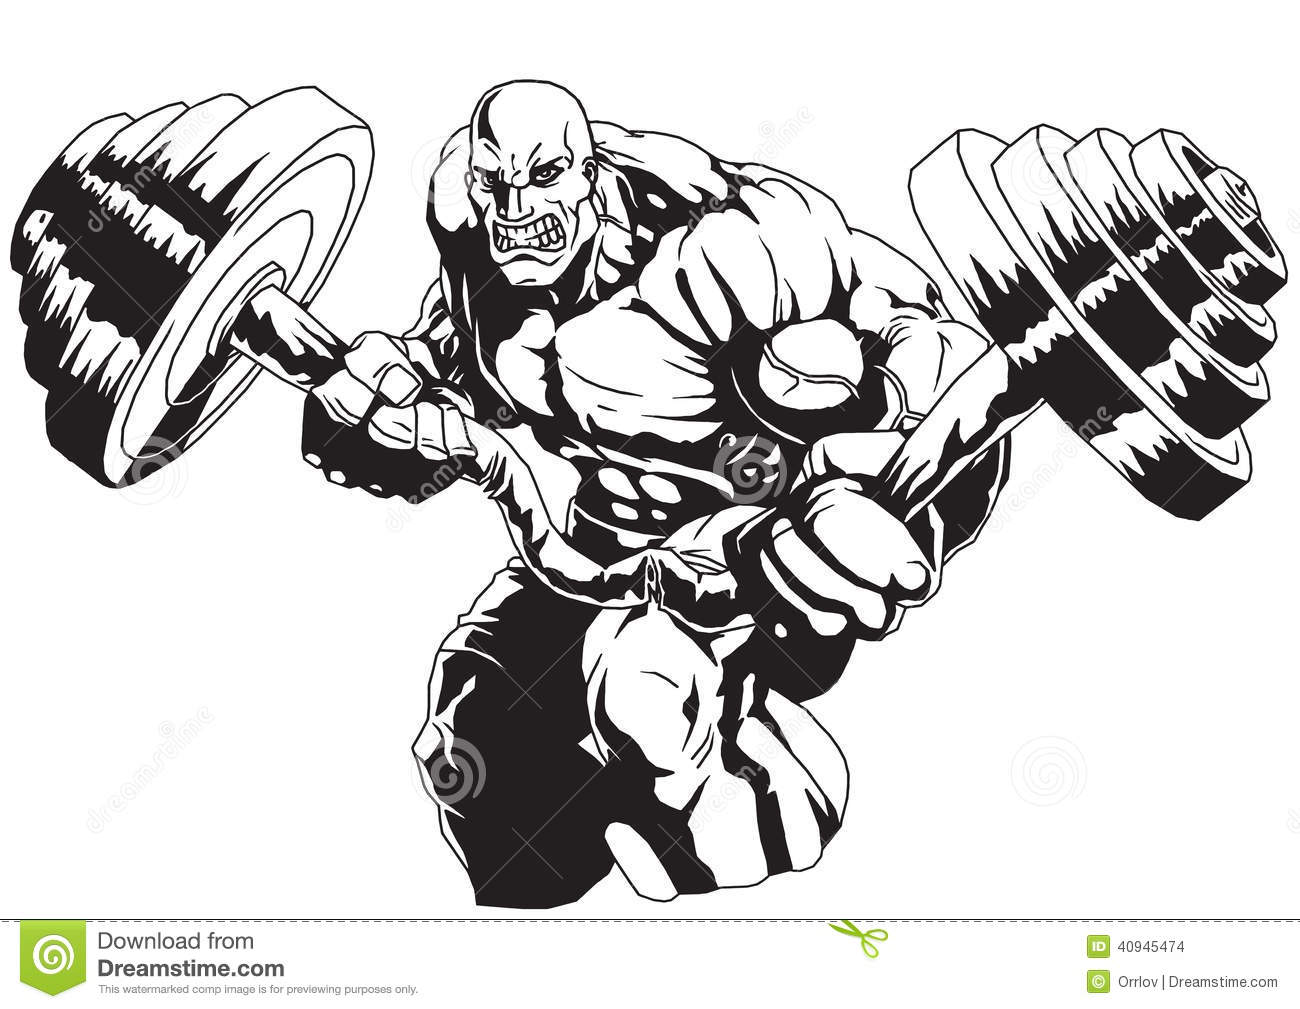 Bodybuilder Flex Heavy Barbell Stock Vector - Illustration of ... for Bodybuilding Graphic Design  131fsj